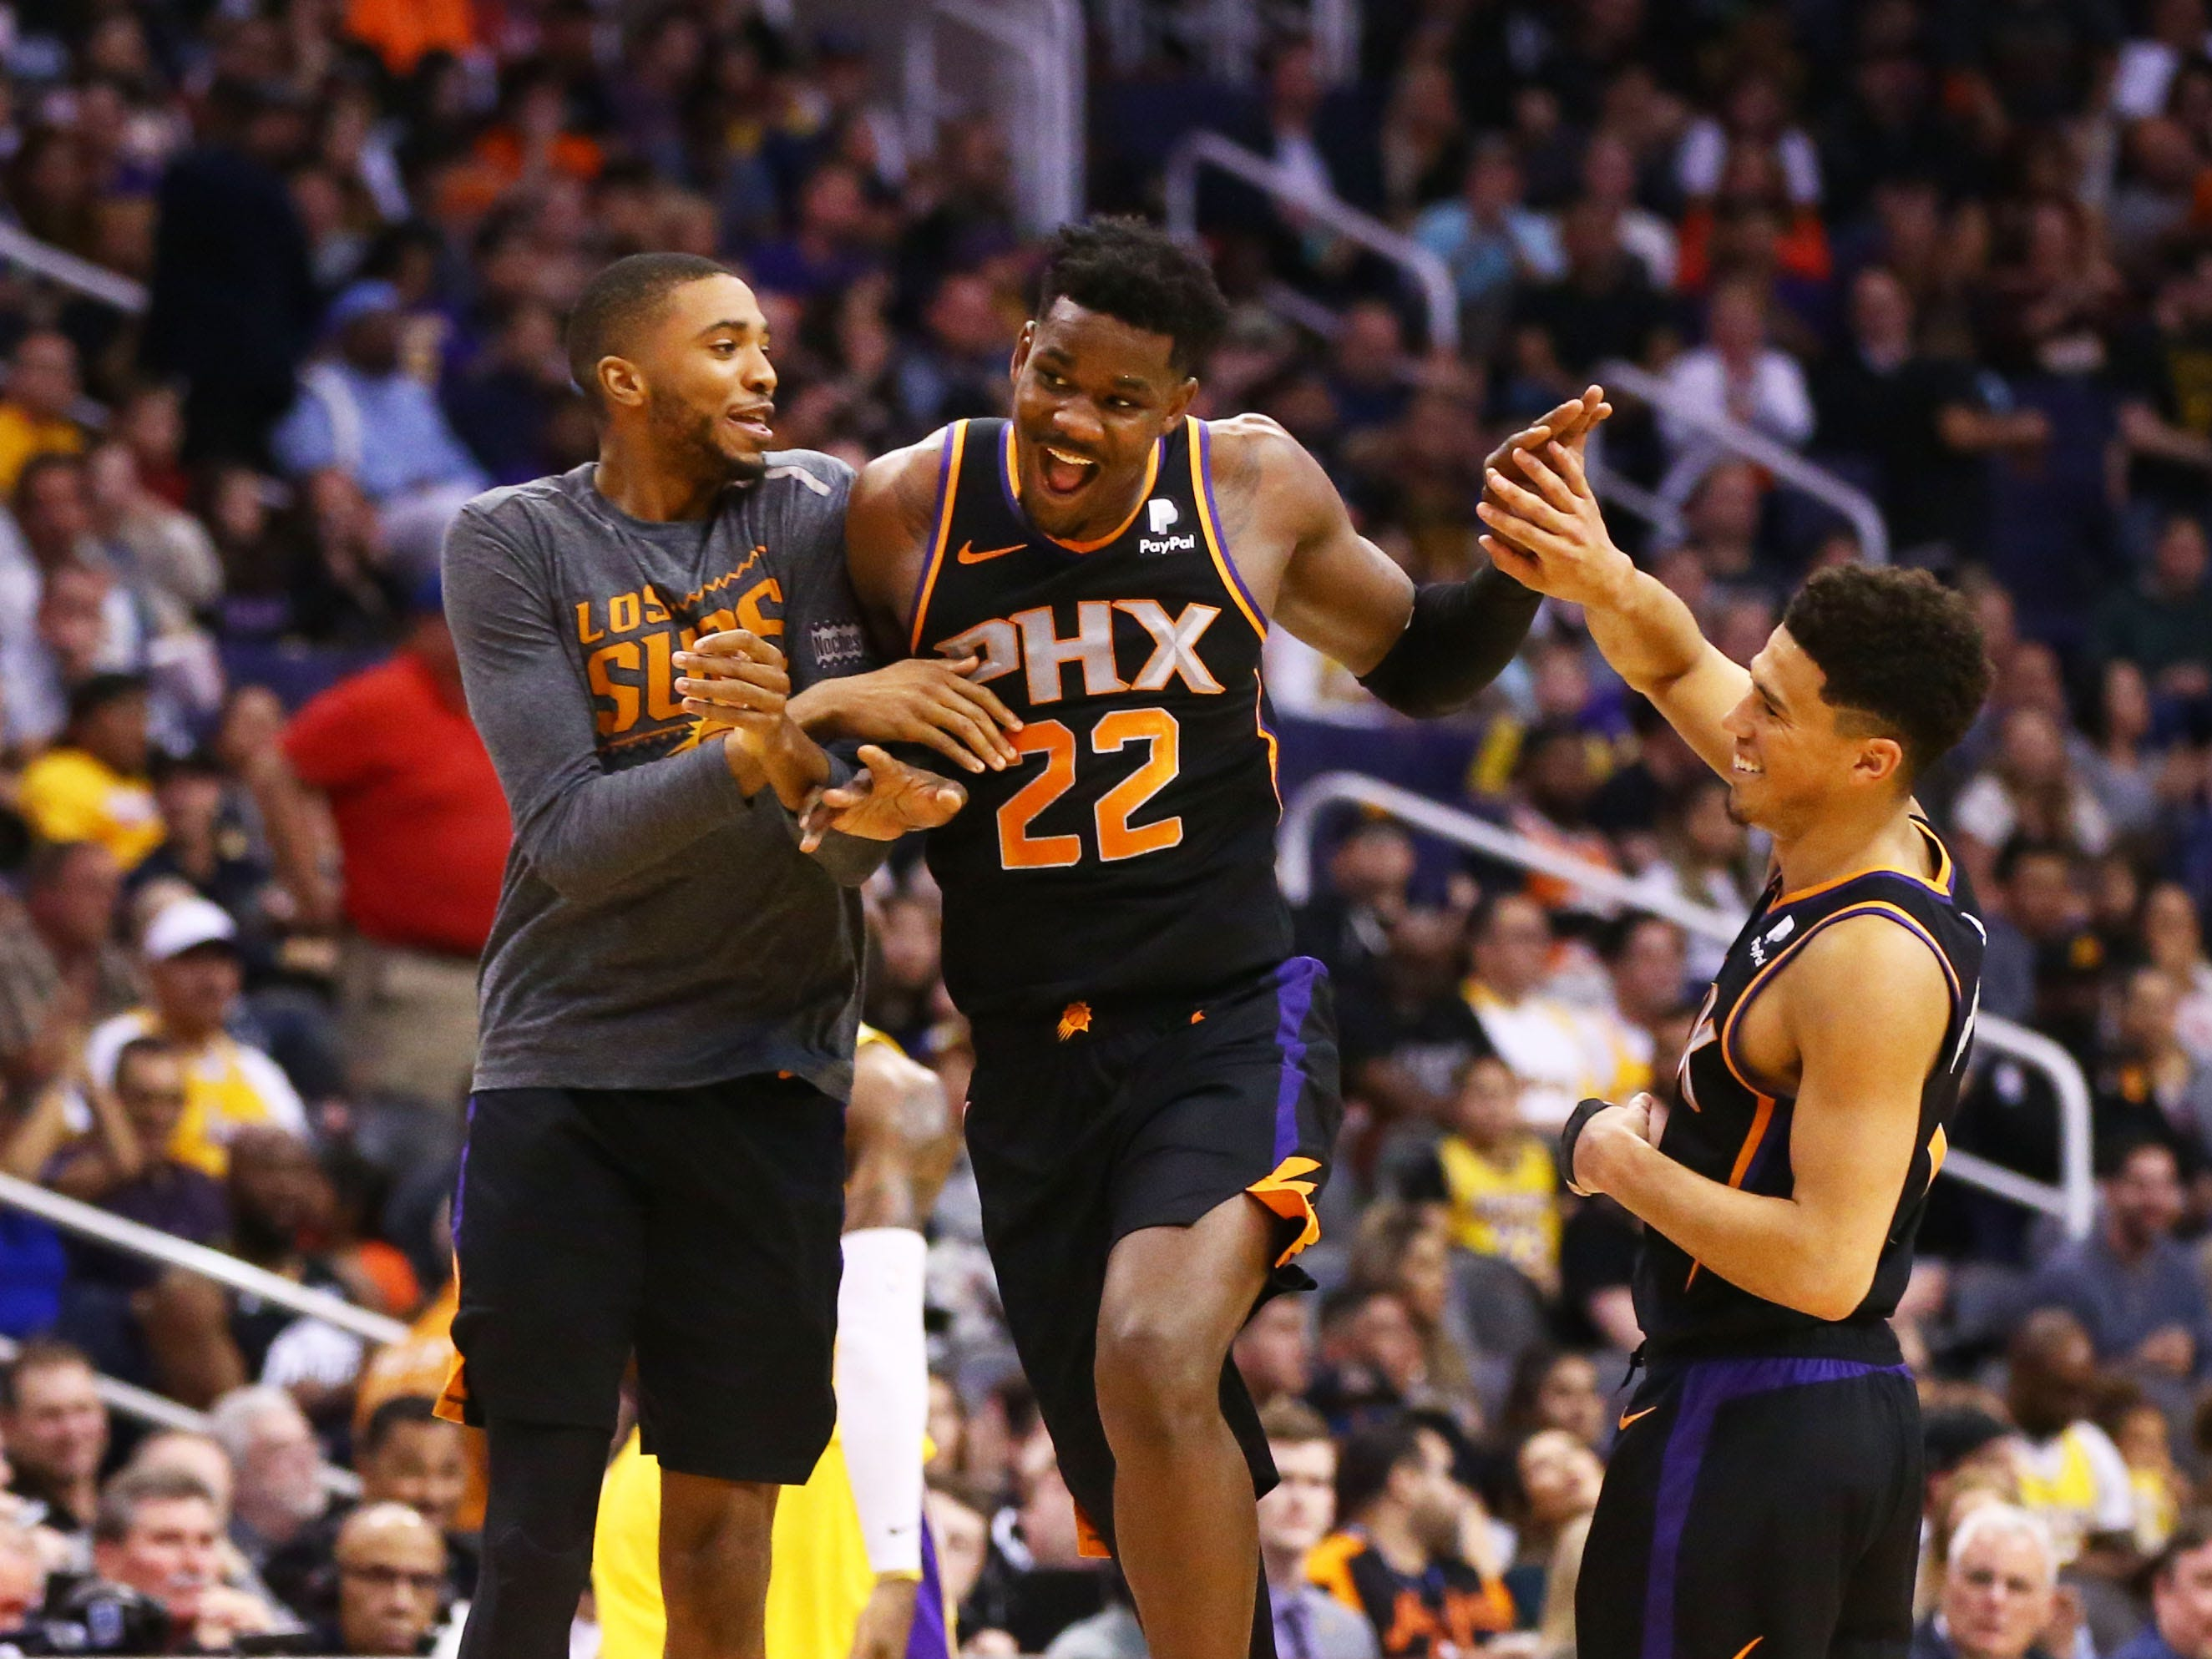 Phoenix Suns center Deandre Ayton (22) celebrates with guard Devin Booker (1) after making a basket against the Los Angeles Lakers in the second half on Mar. 2, 2019, at Talking Stick Resort Arena in Phoenix, Ariz.